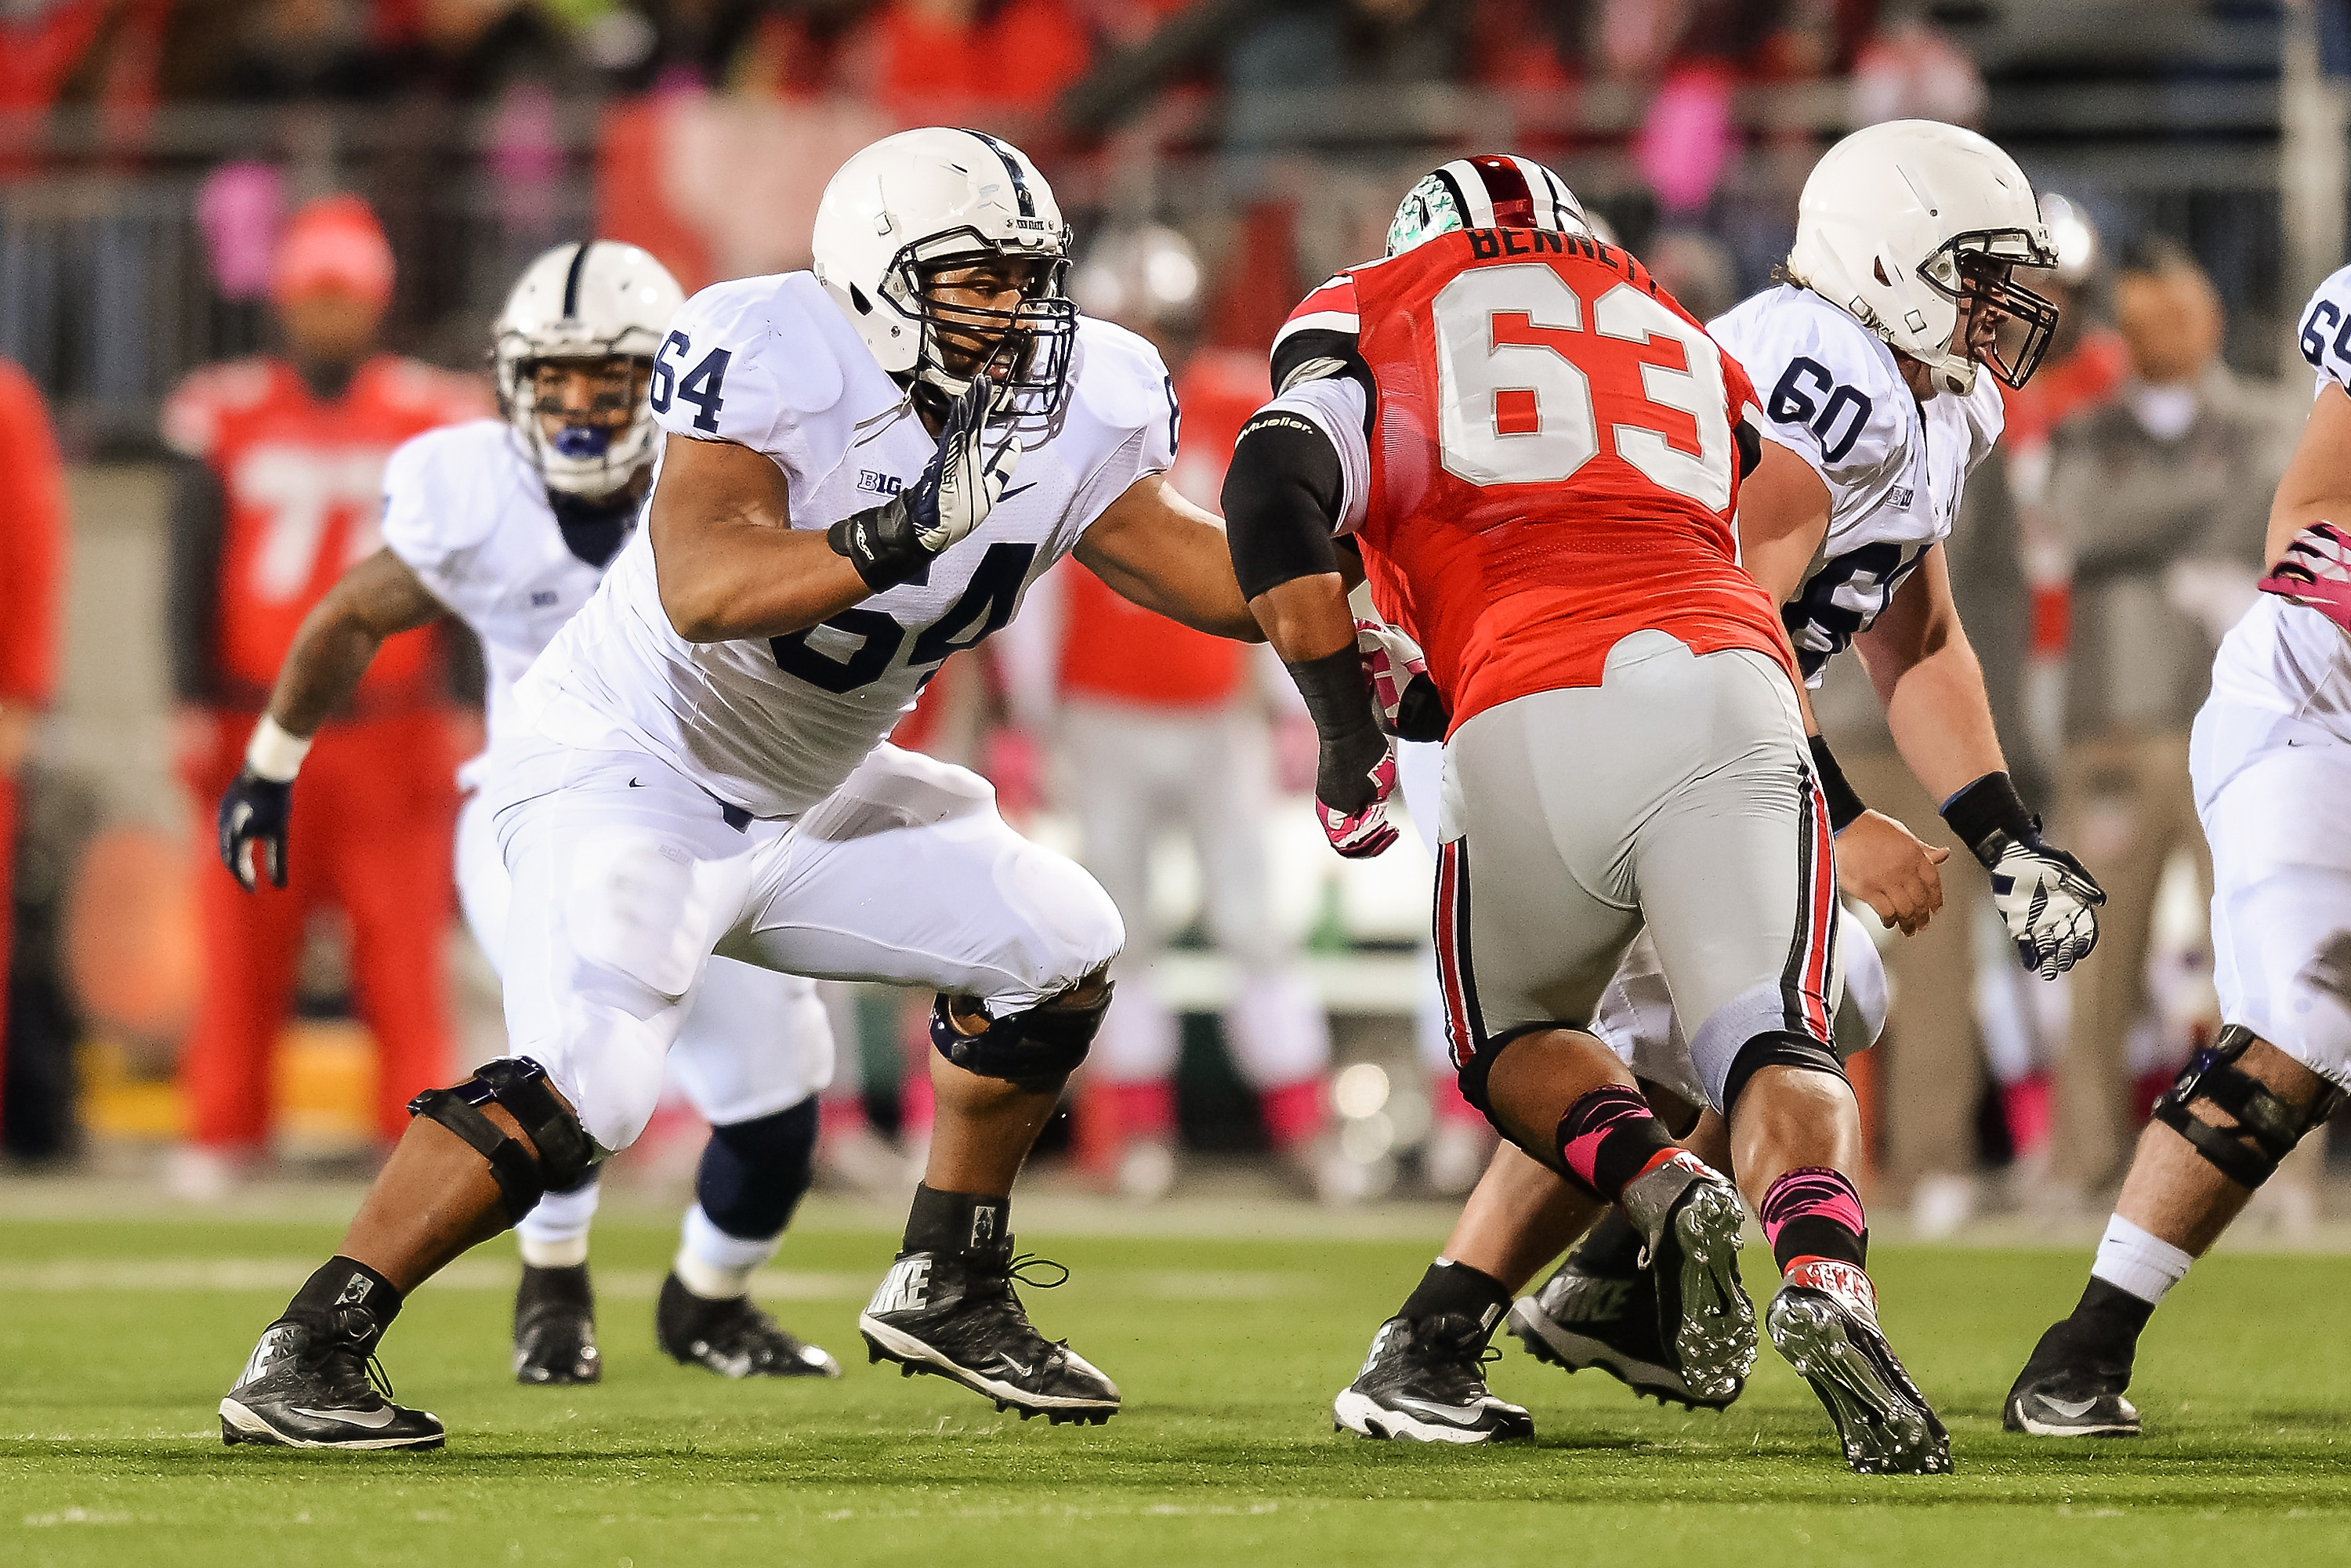 John Urschel (64) won the Sullivan Award after a standout academic-athletic career at Penn State. (Getty Images)